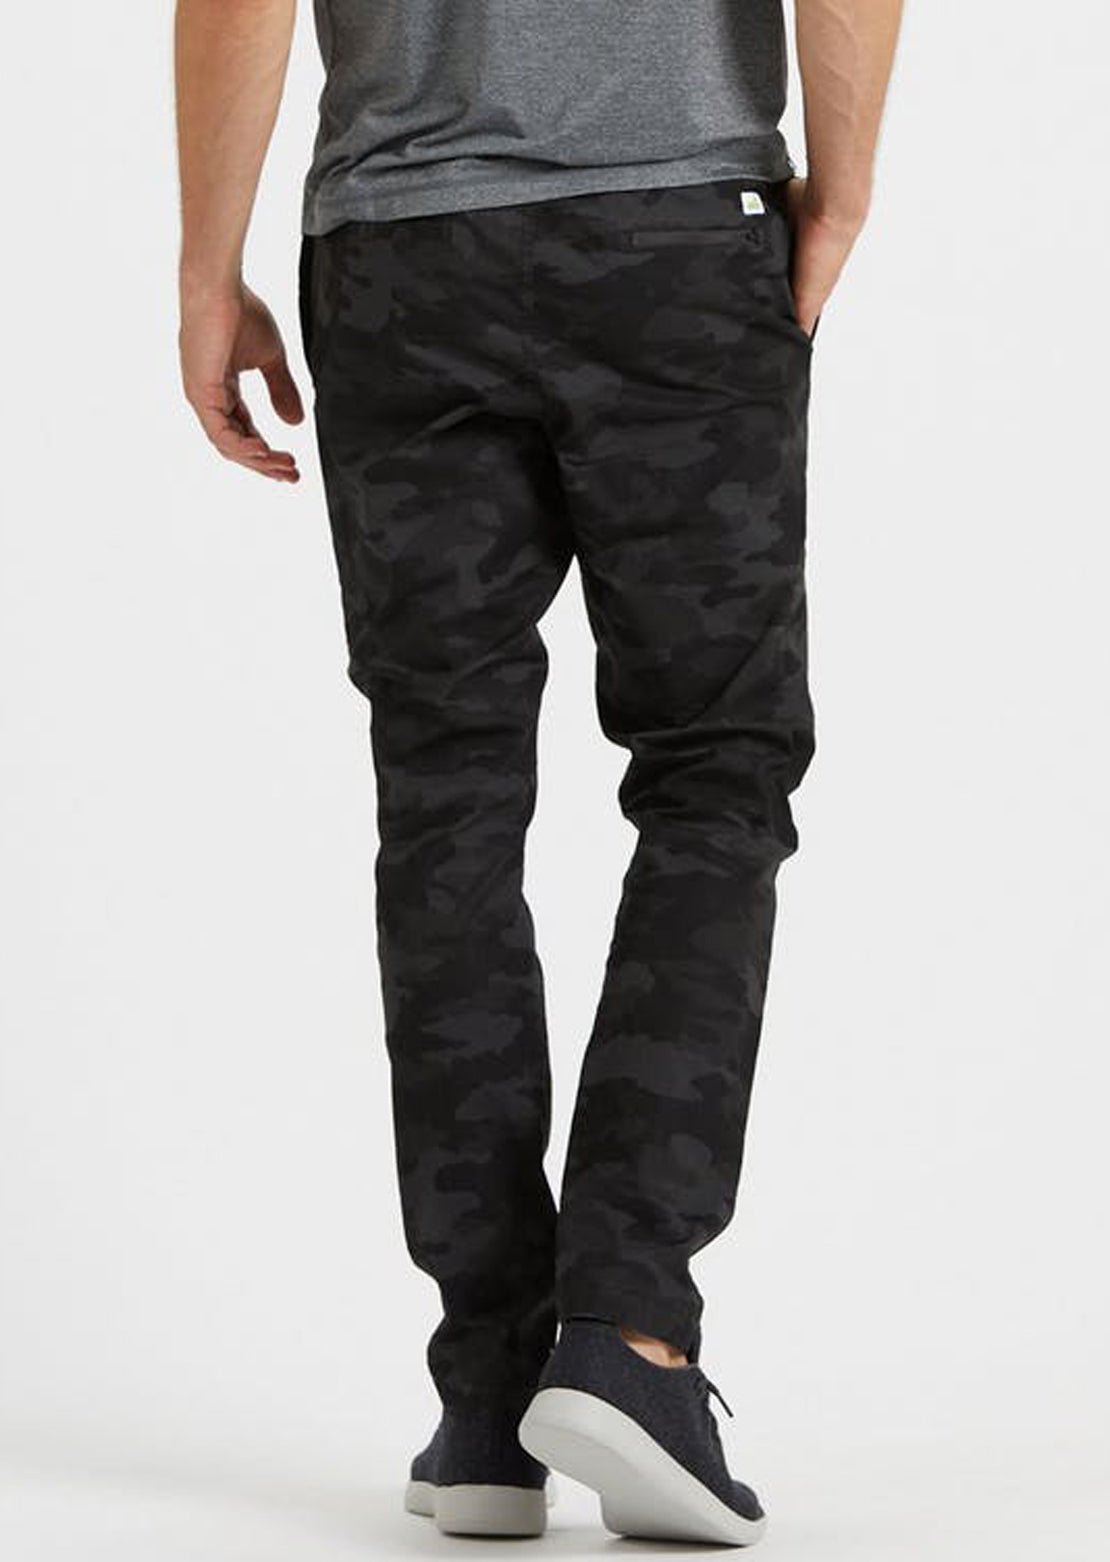 Vuori Men's Ripstop Climber Pants Black Camo